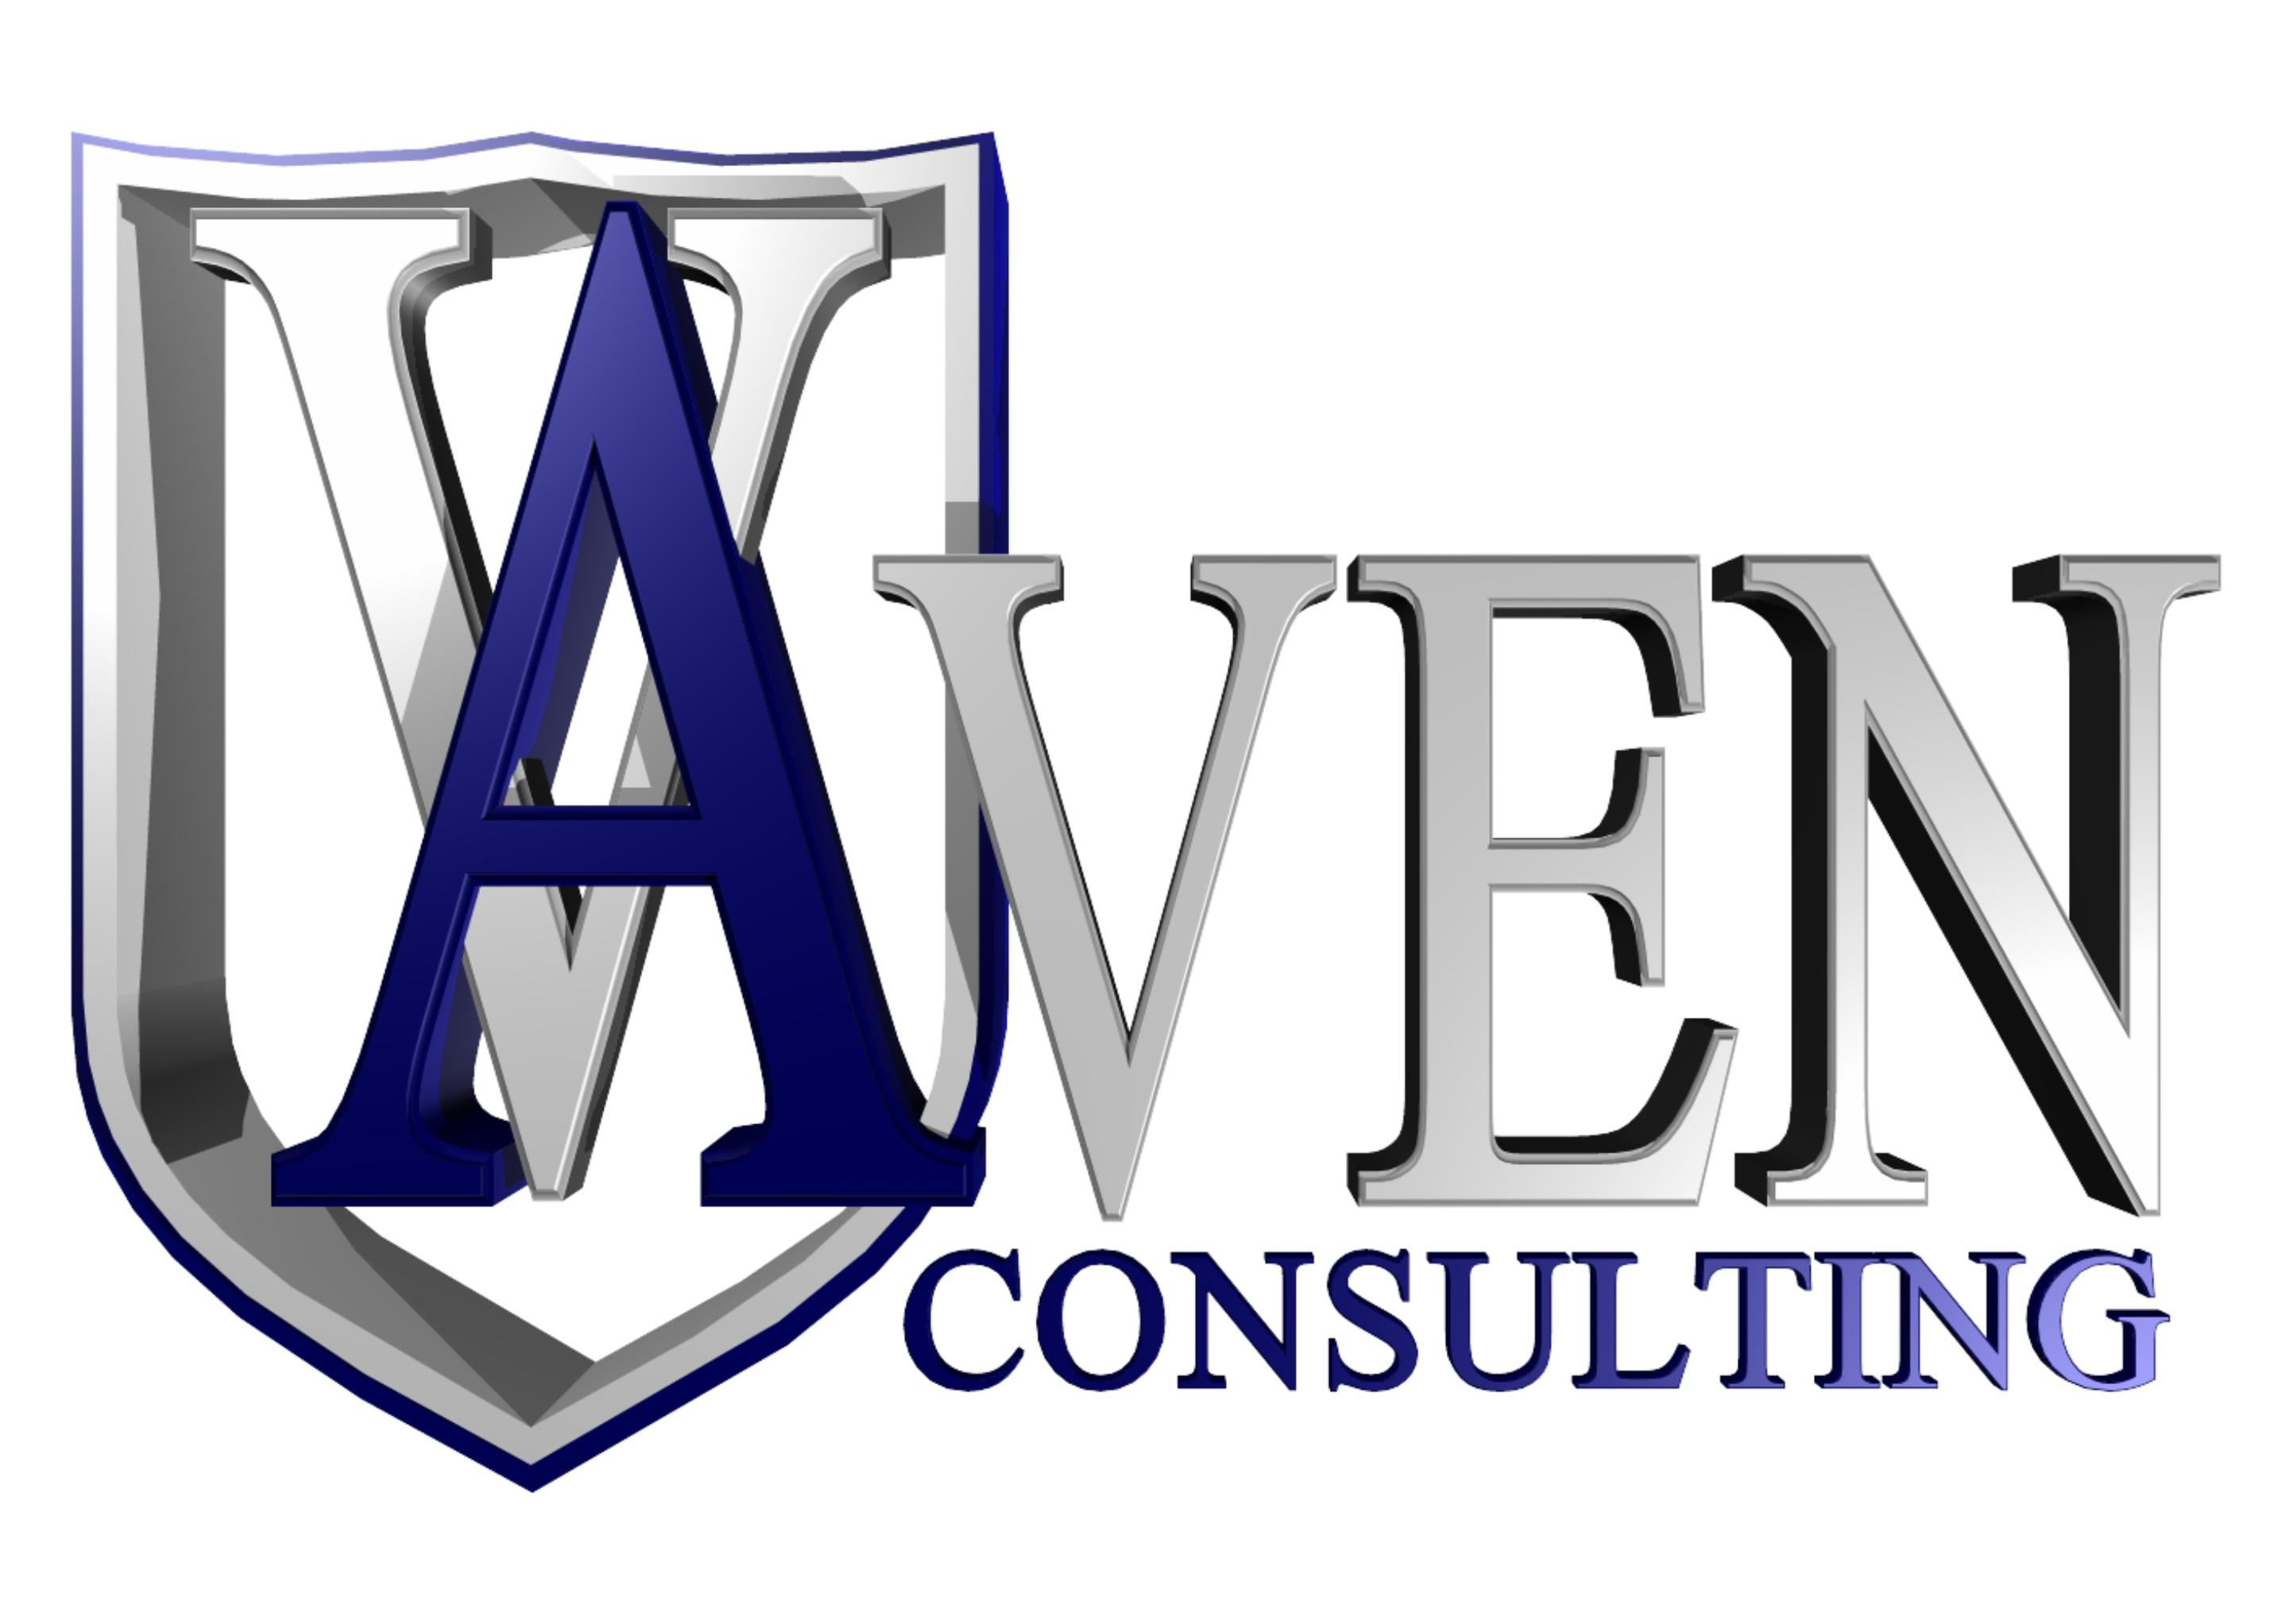 Aven consulting Logo